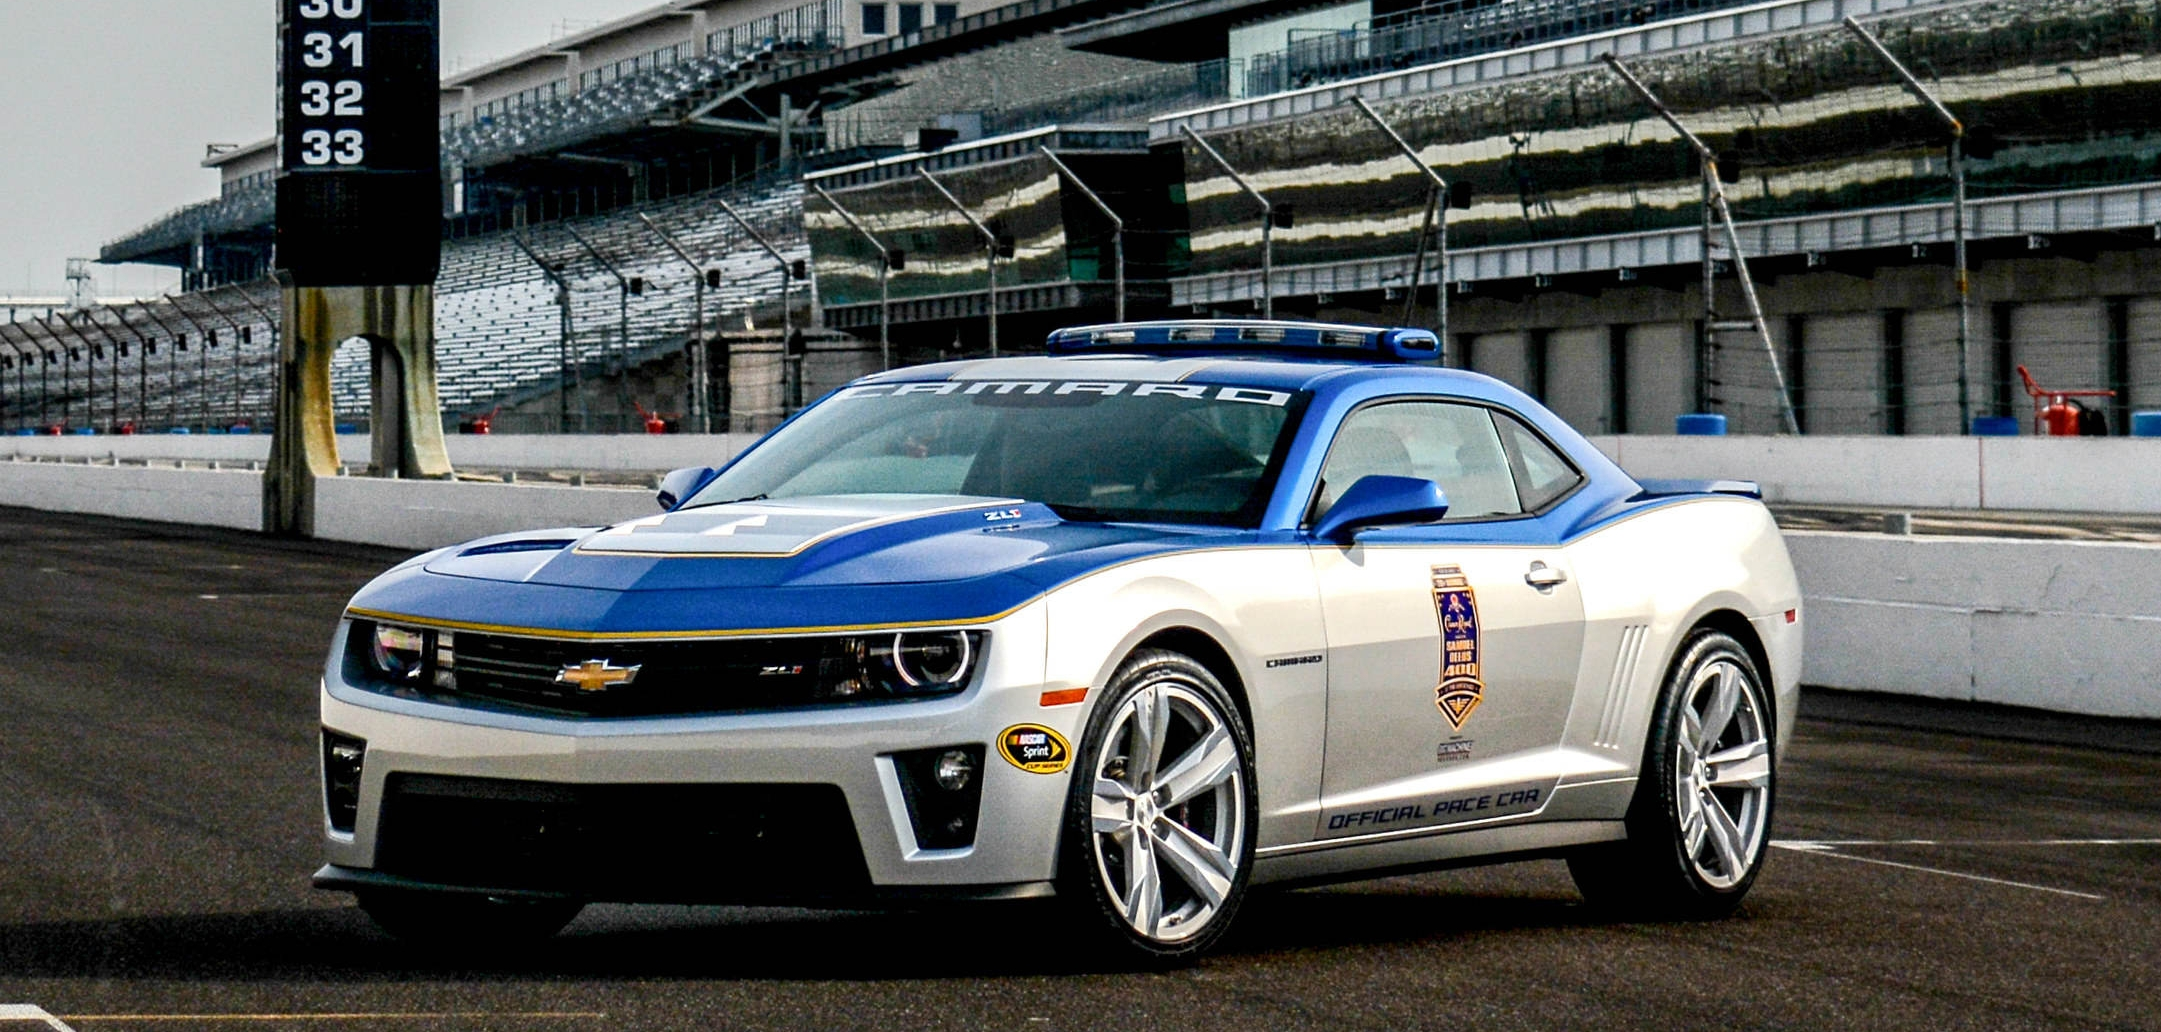 2013 Chevrolet Camaro ZL1 Pace Car Gallery 516309 | Top Speed2013 Camaro Zl1 Coupe